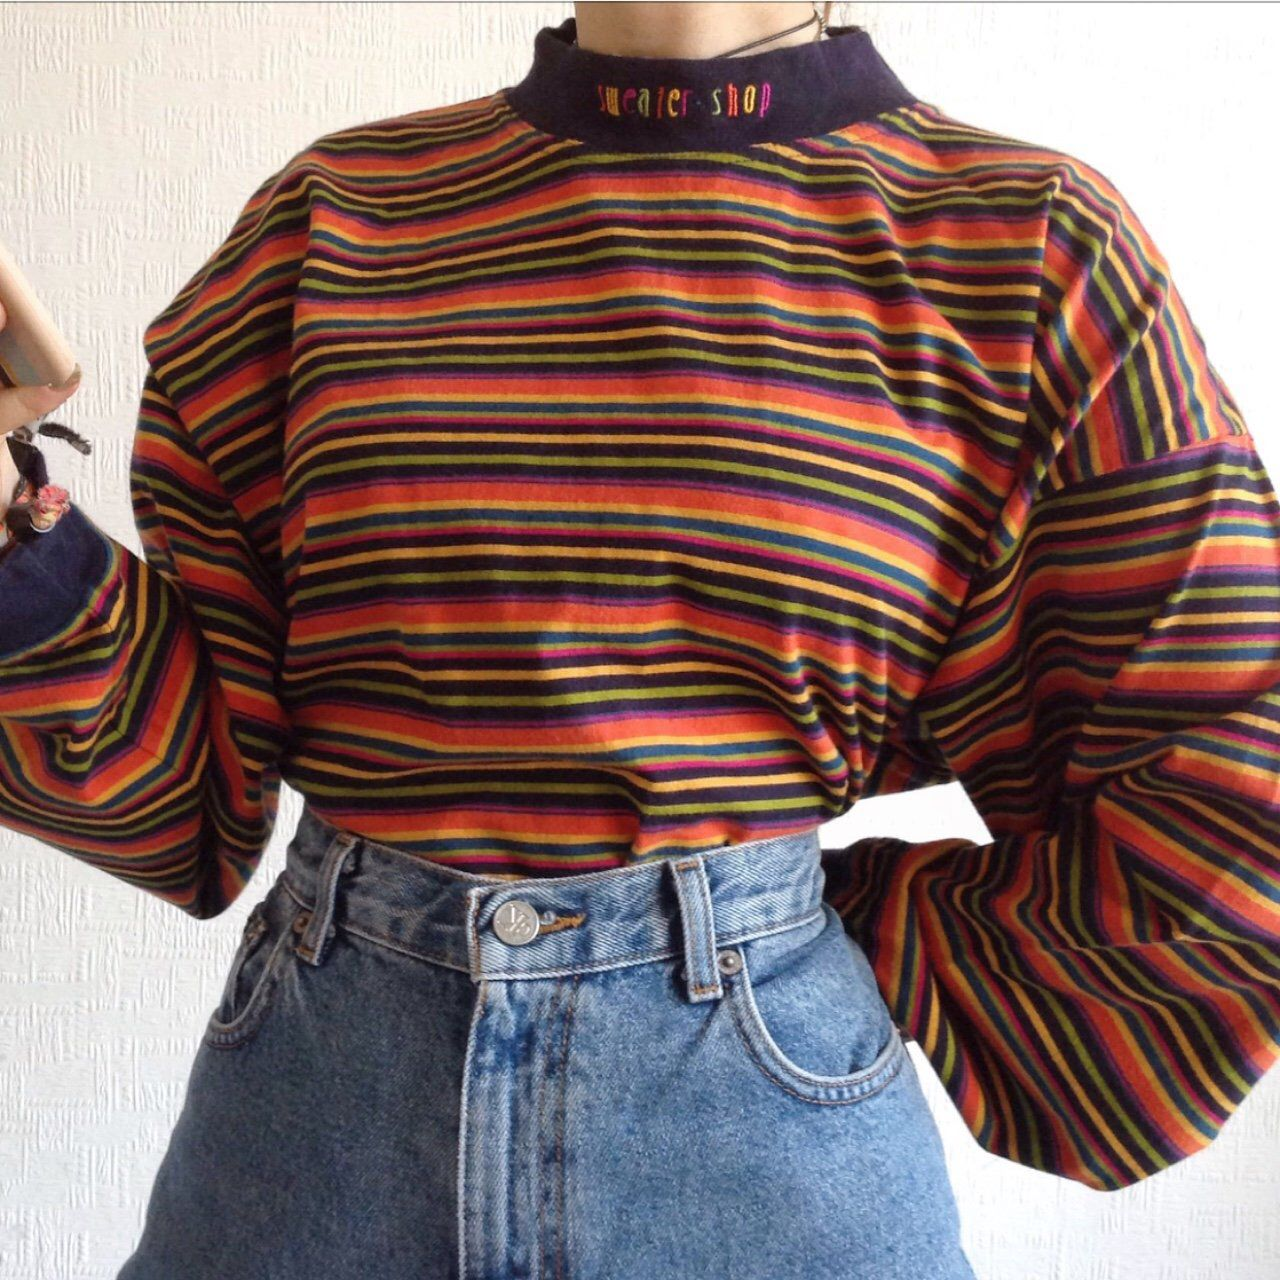 6c62c1db Vintage the sweater shop striped sweatshirt. Look what I just found on Depop  ✋ https://depop.app.